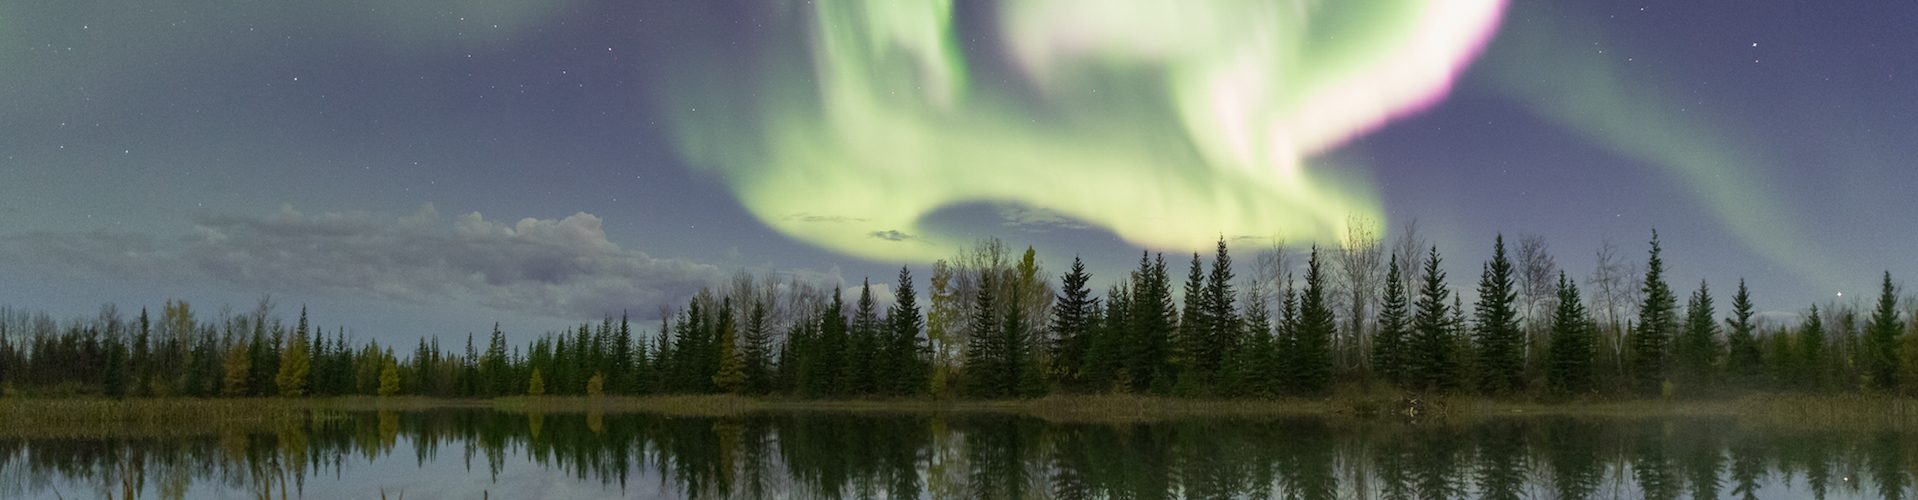 aurora borealis over lake and forest